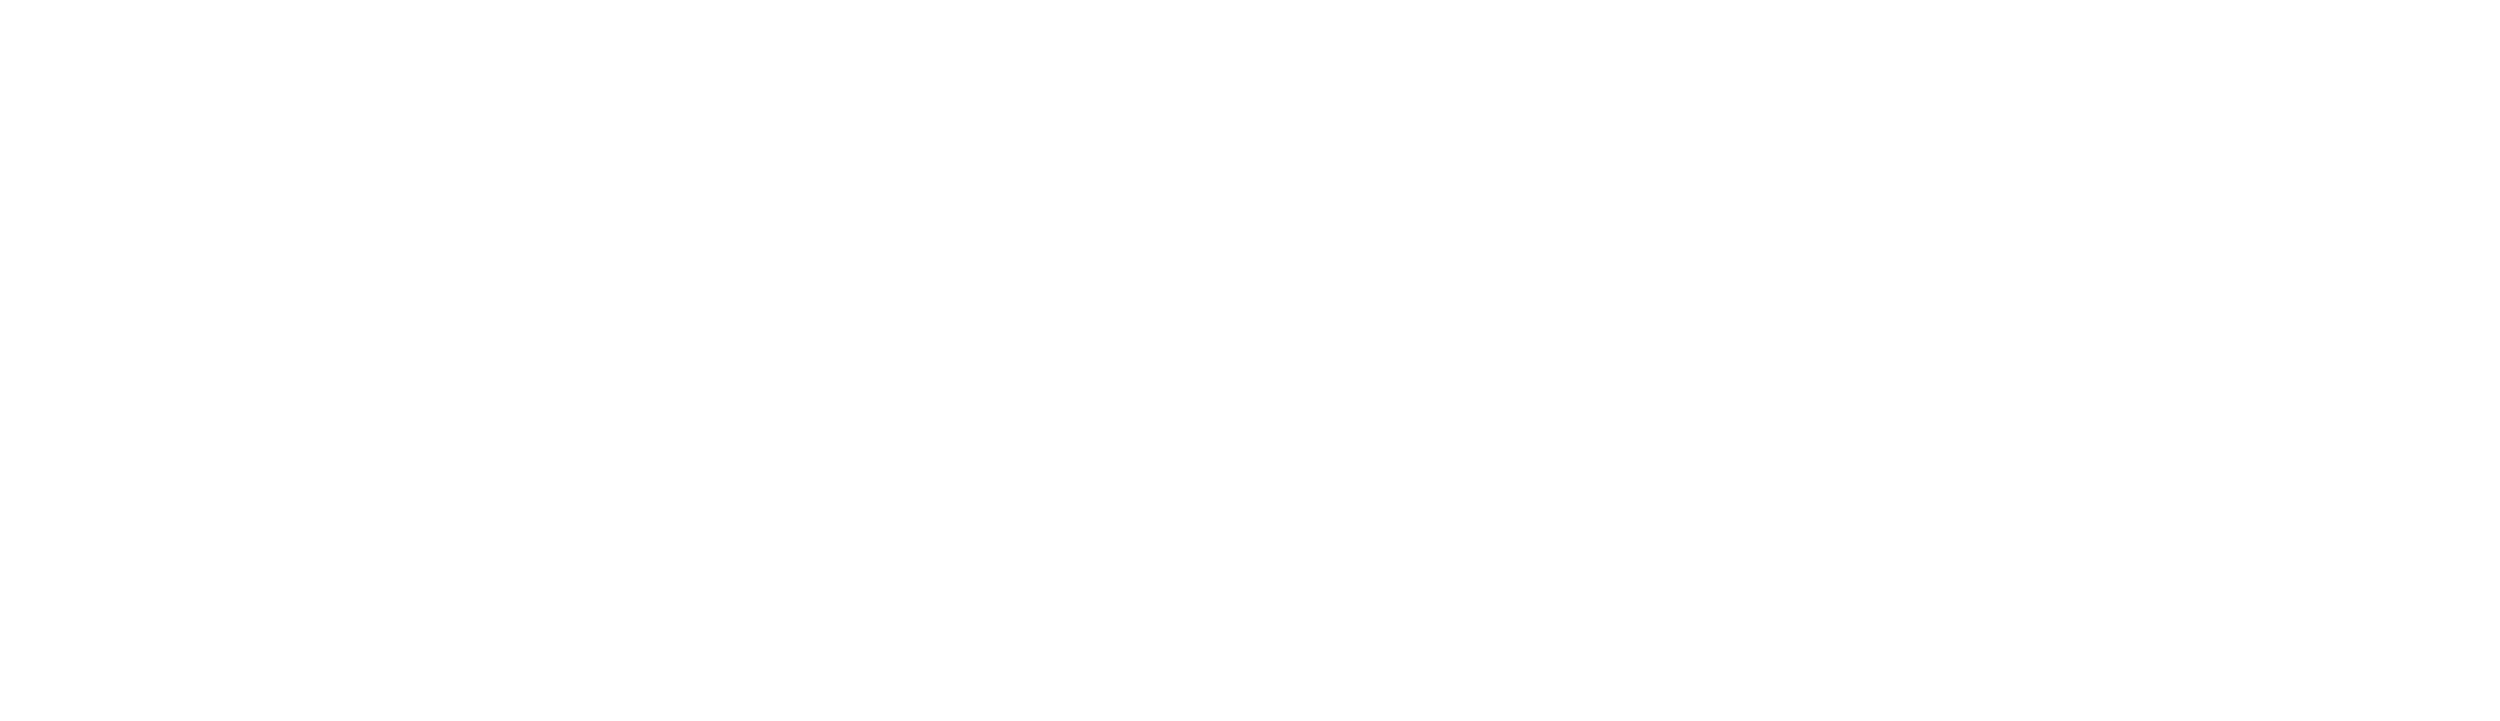 Millers Professional Imaging Logo-All White.png